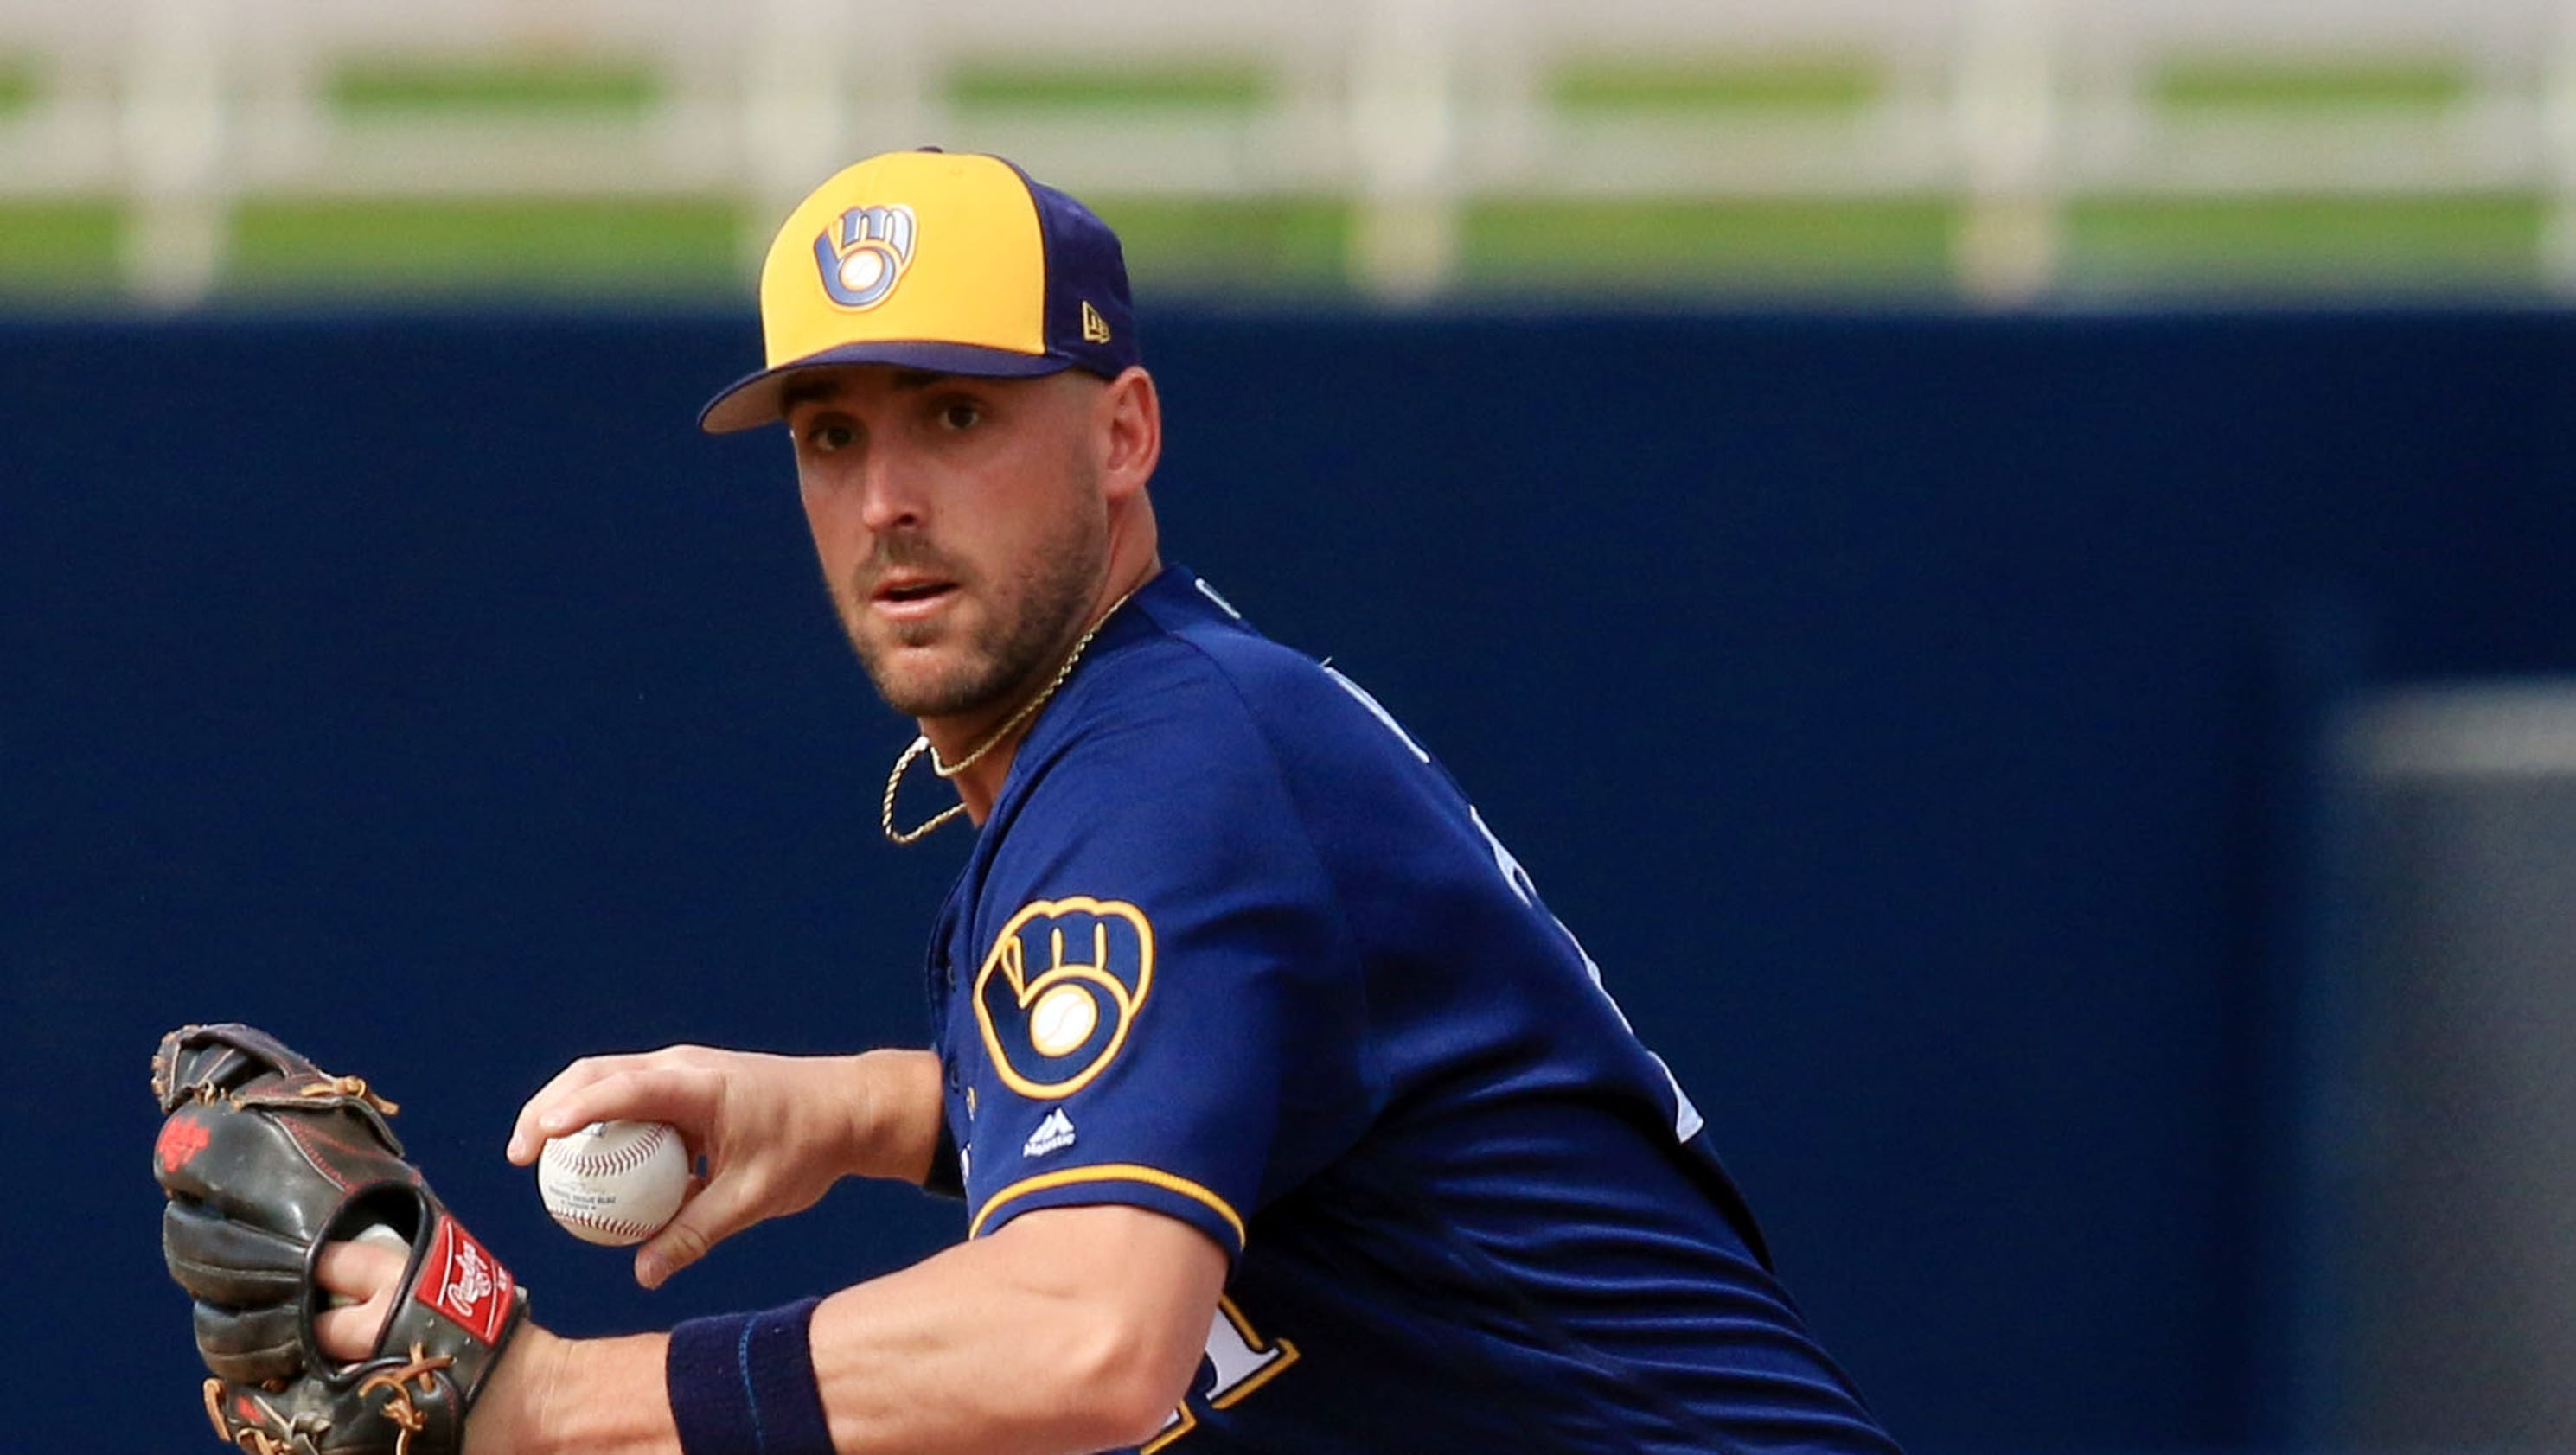 636561432076773785-mjs-brewers-spring-training-66872576